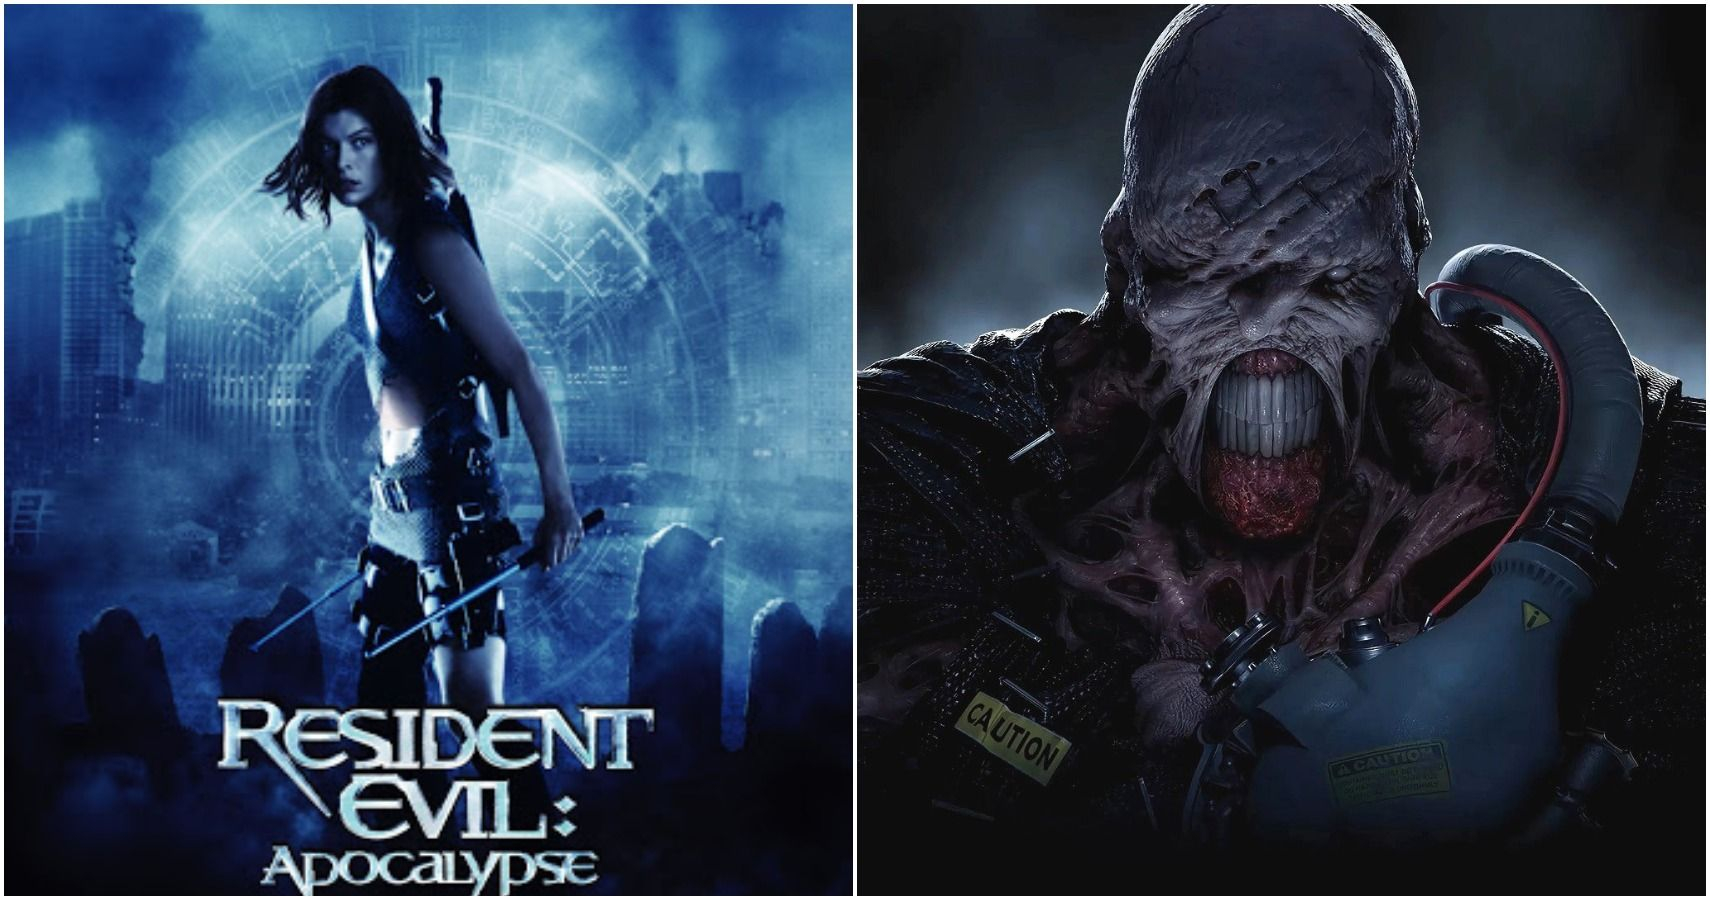 Resident Evil 3 5 Things The Movies Got Right About The Game 5